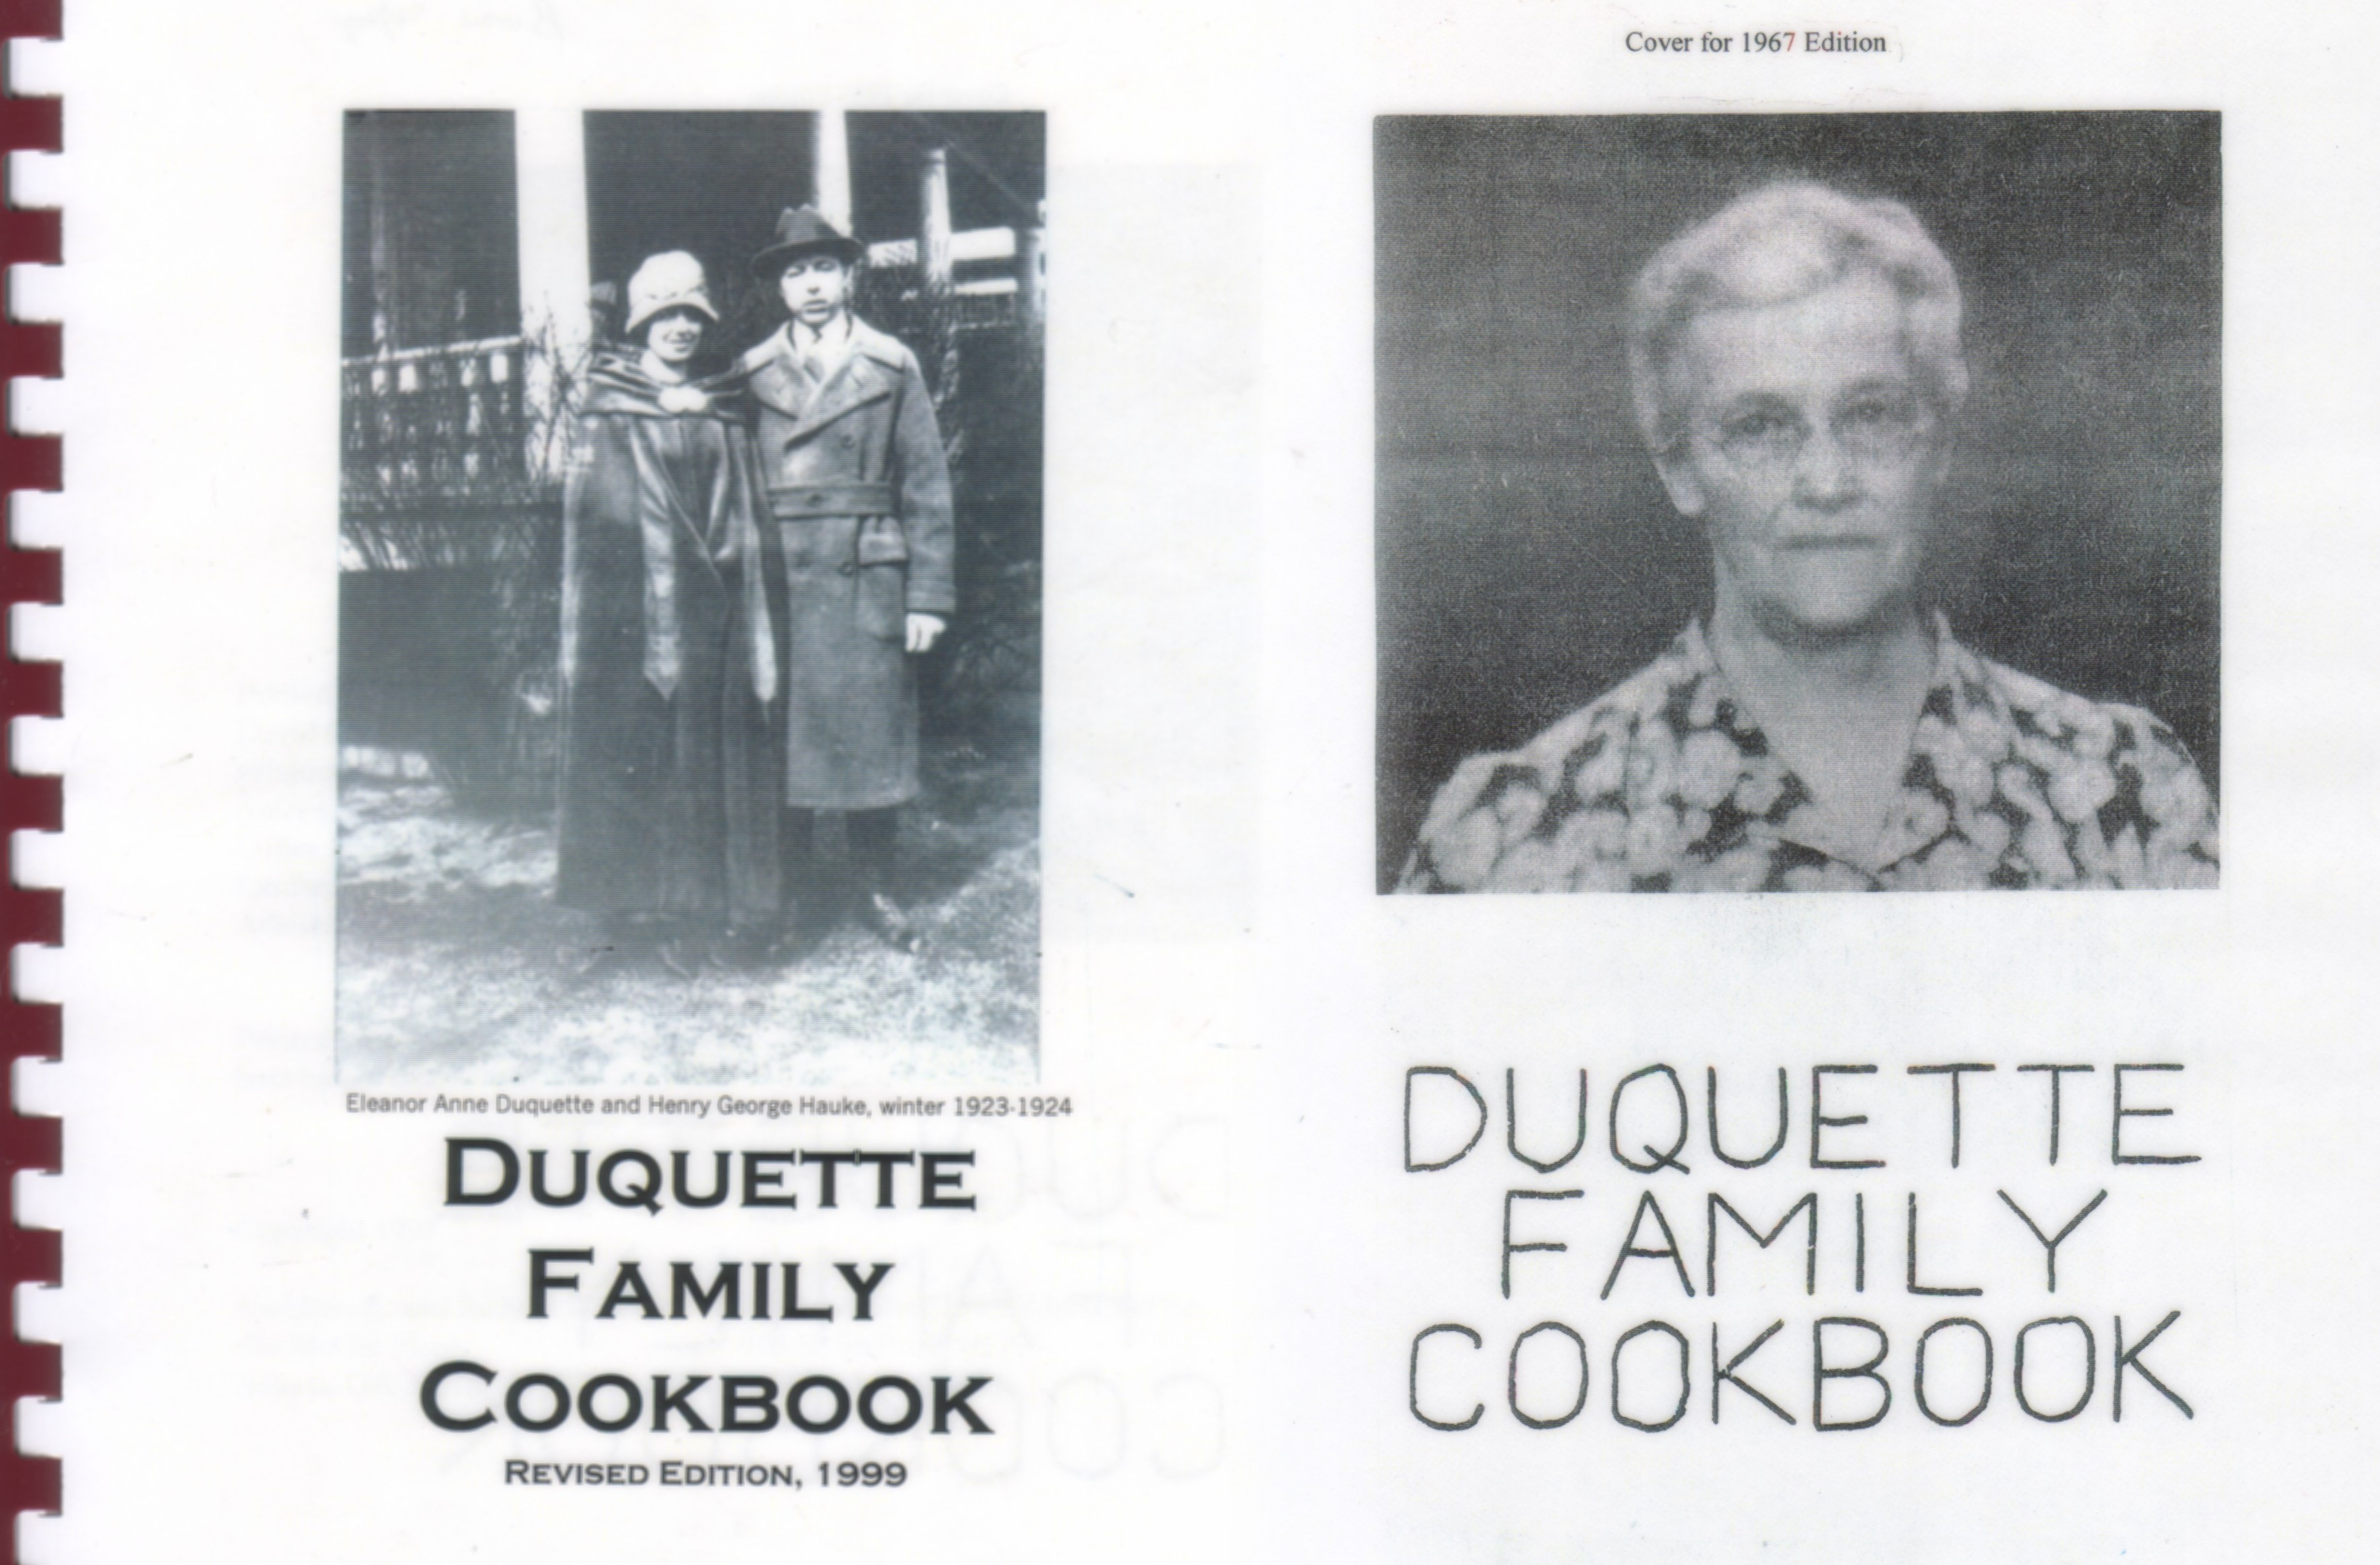 Duquette Family Cookbook, first printing 1967 and then revised, copywritten and republished, 1999; used with permission